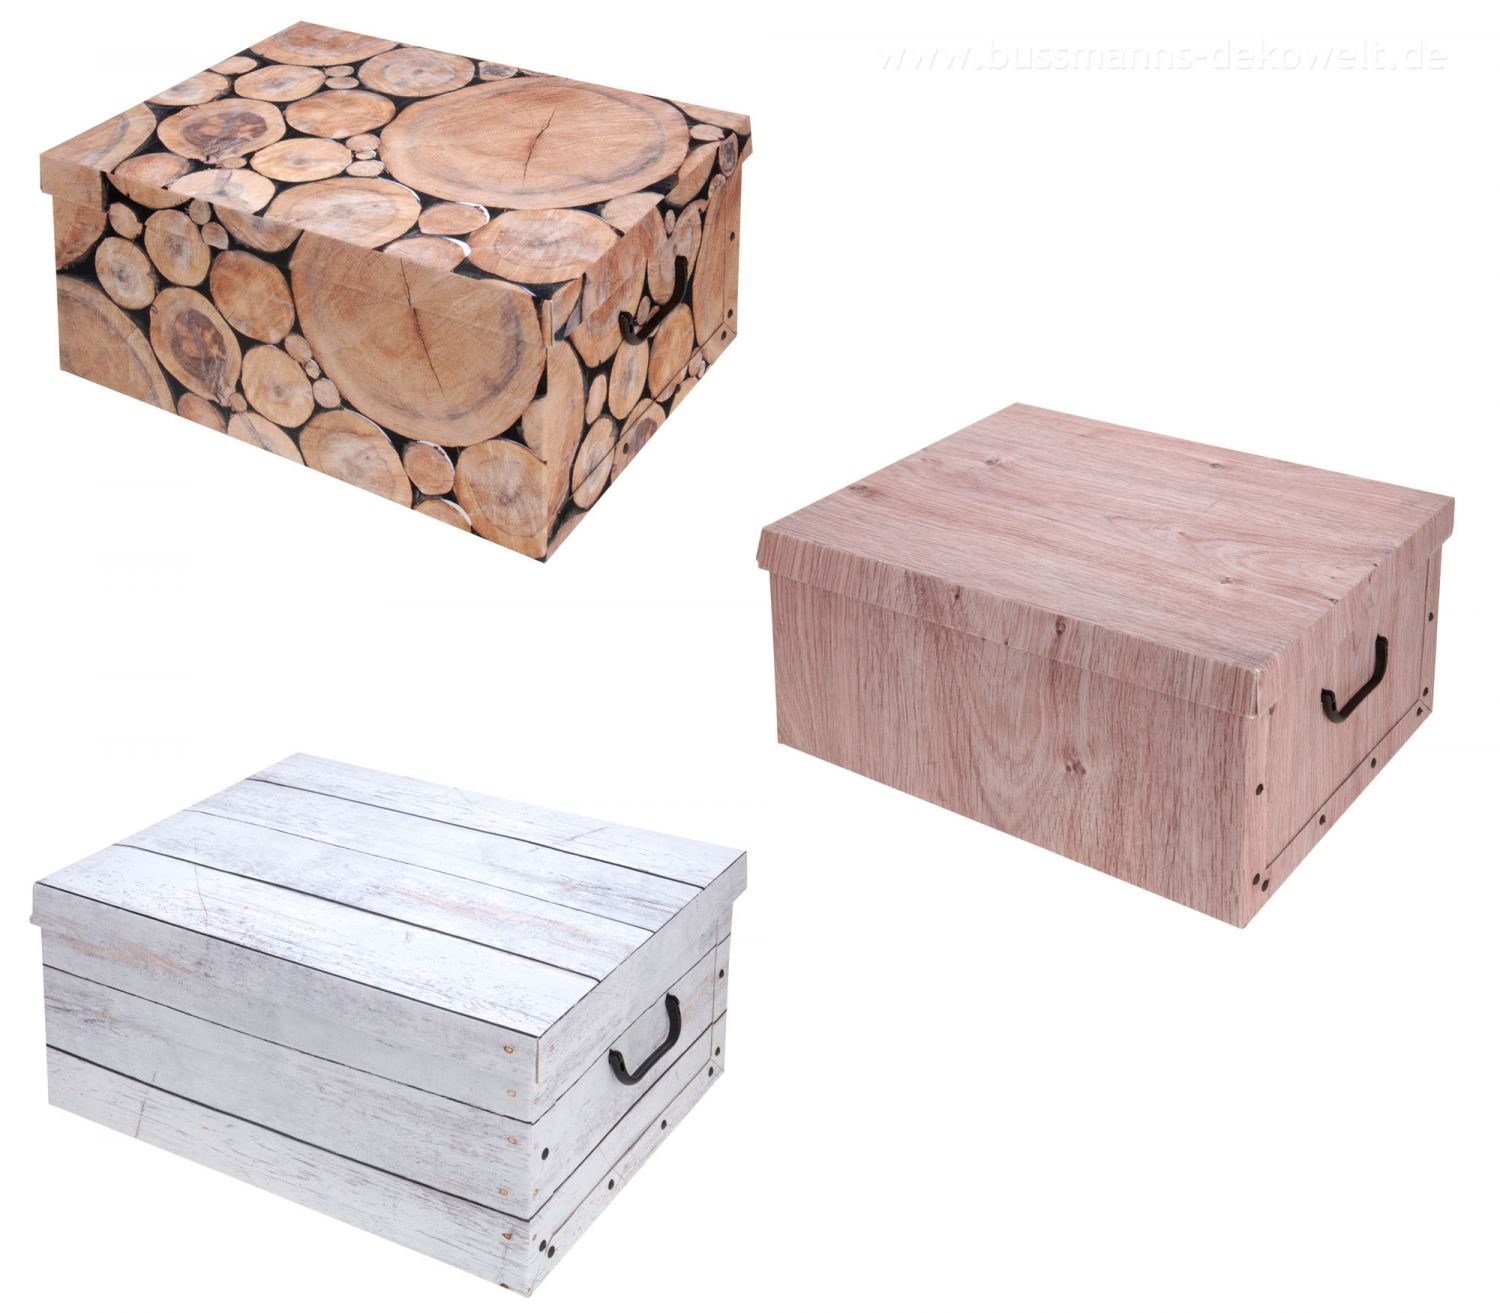 2x aufbewahrungs box mit deckel purenature kiste karton schachtel ebay. Black Bedroom Furniture Sets. Home Design Ideas